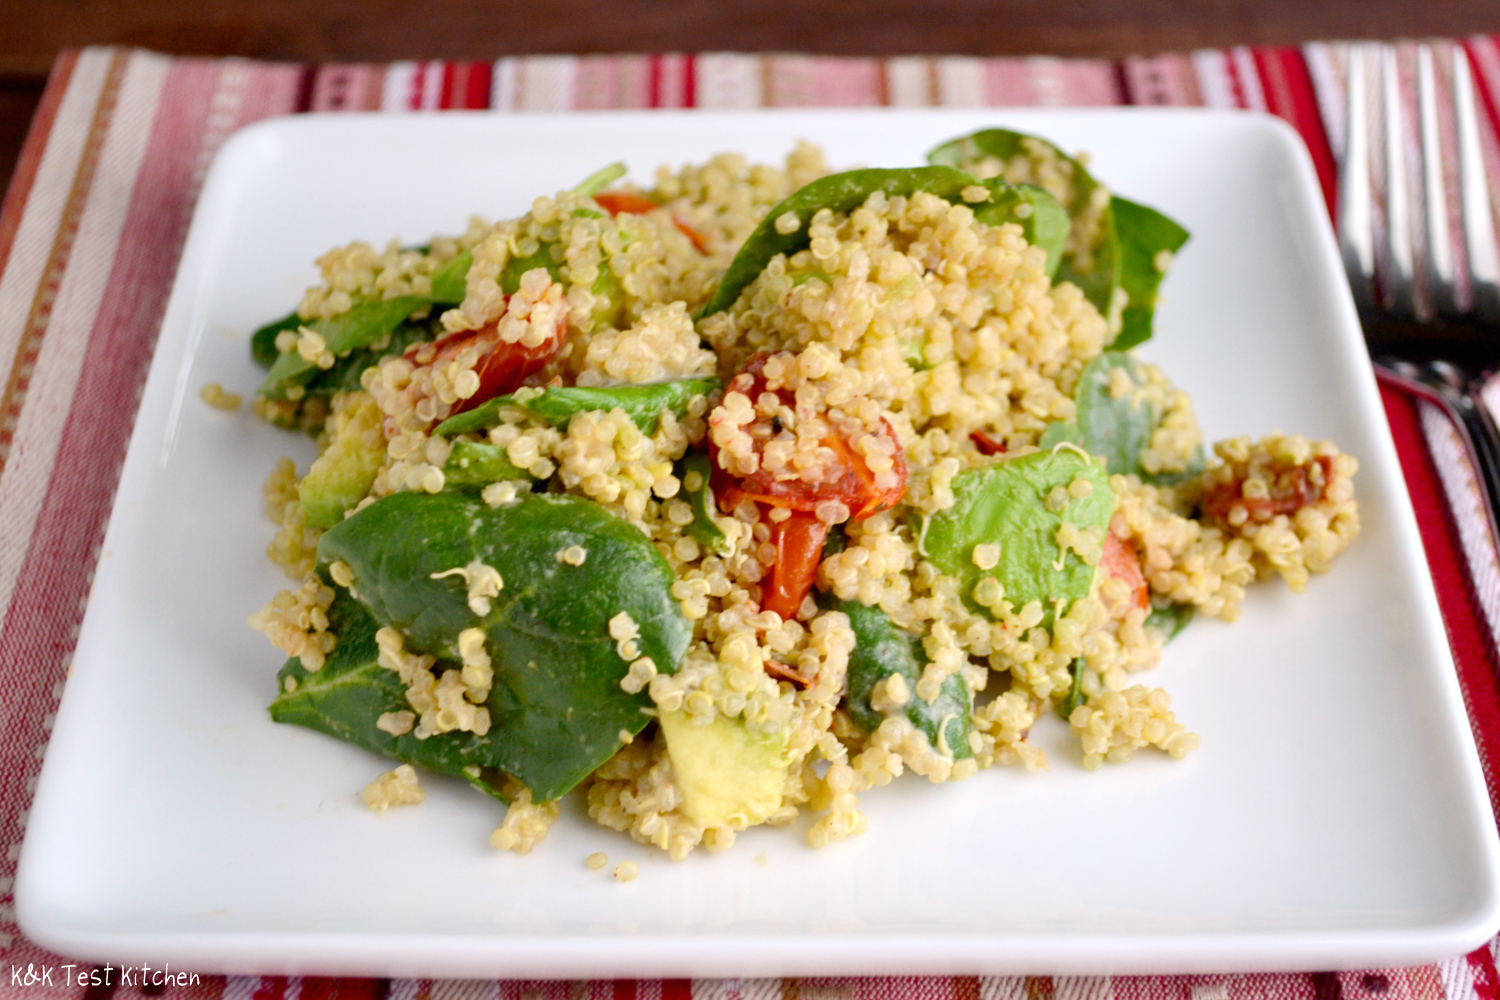 Test Kitchen: Quinoa Salad with Roasted Tomatoes and Avocado